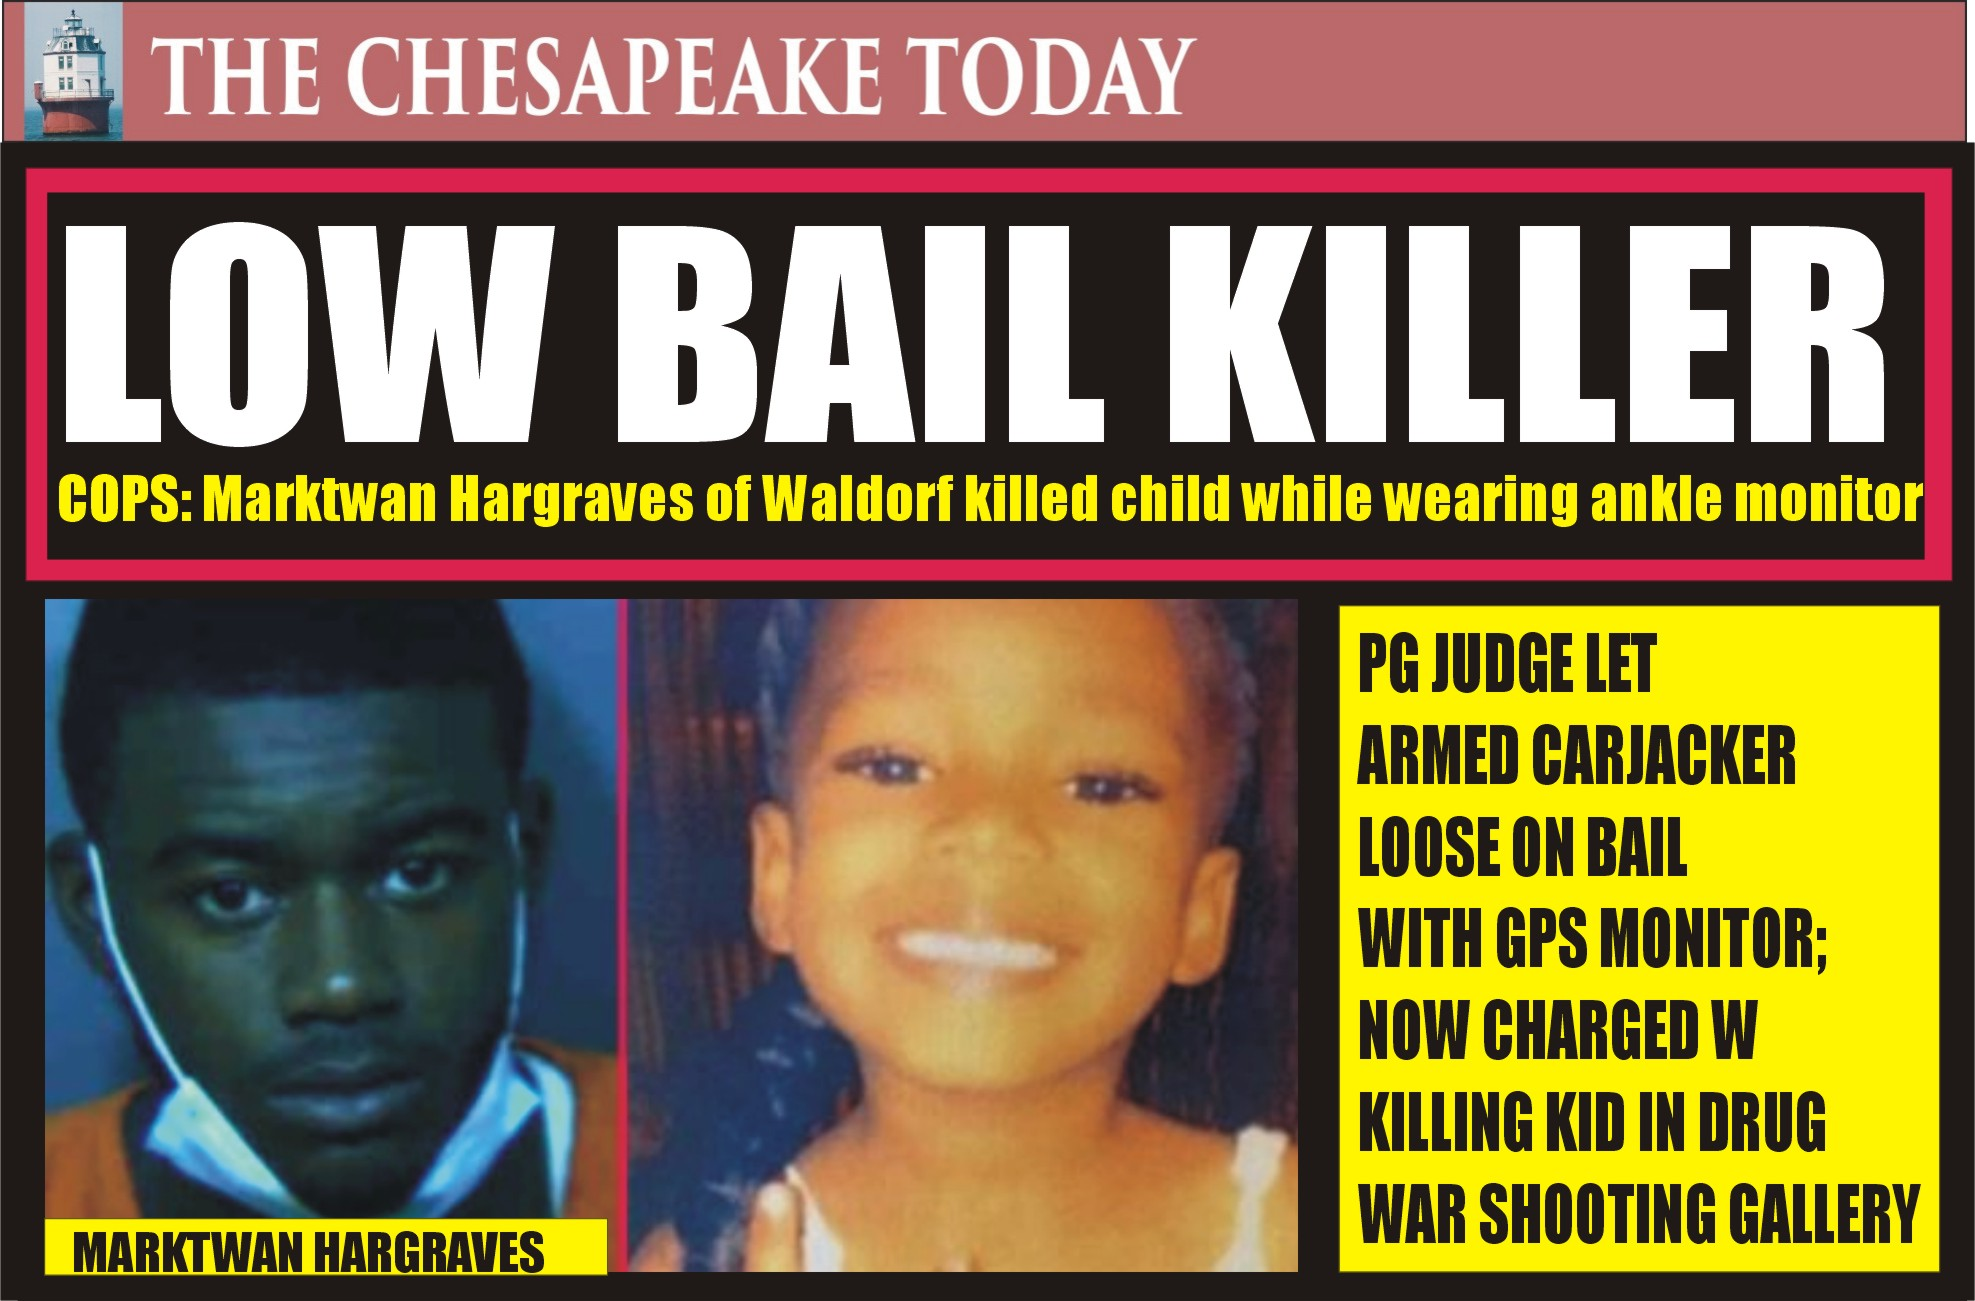 MURDER USA: Marktwan Hargraves, of Waldorf, out on bail from PG County for armed carjacking charged with gunning down six-year-old Nylah Courtney in Anacostia